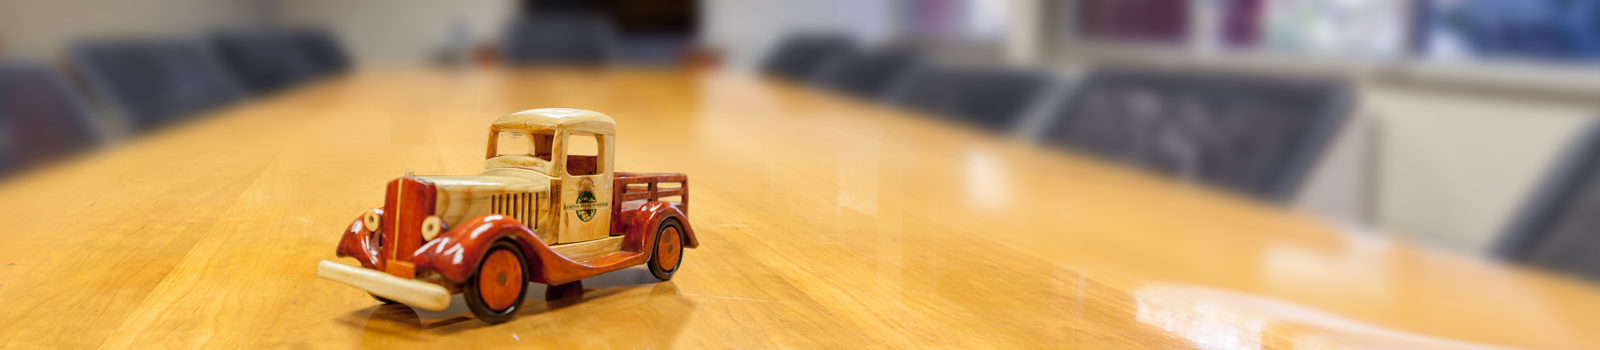 Small toy car on a desk.